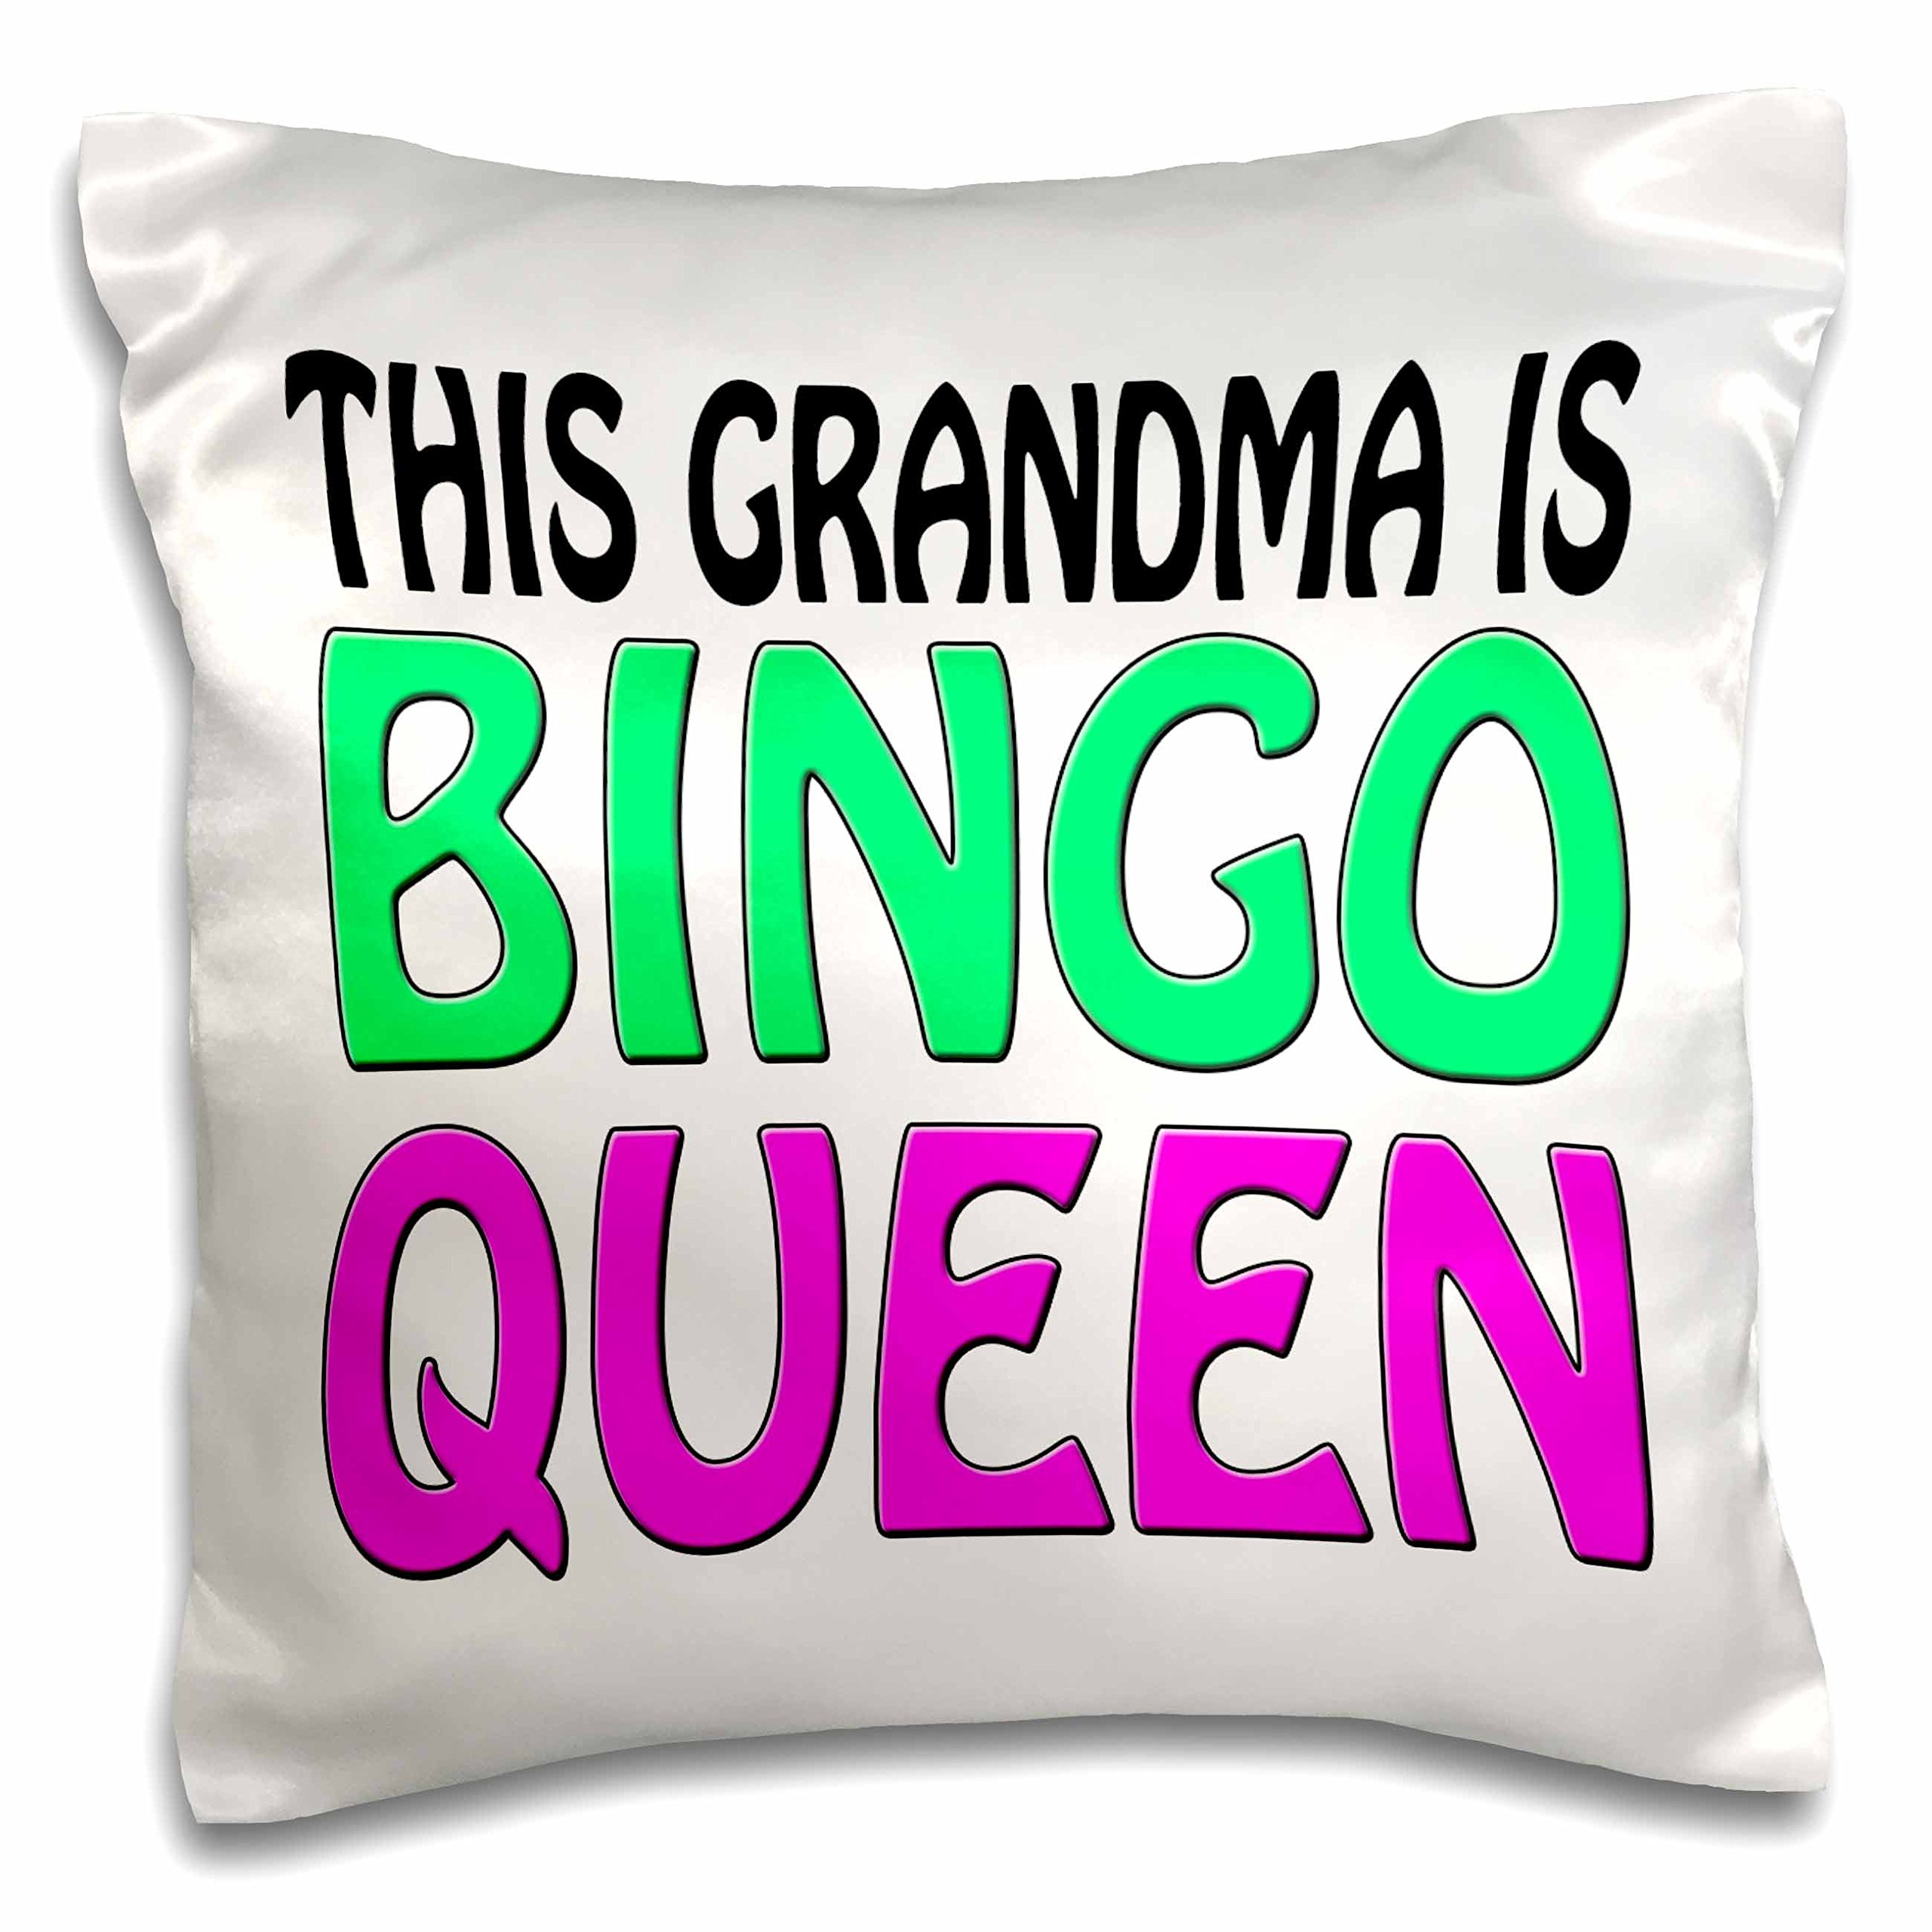 3dRose This Grandma Is Bingo Queen, Hot Pink, Lime Green, - pillow Case, 16 by 16-Inch (pc_149771_1) by 3dRose